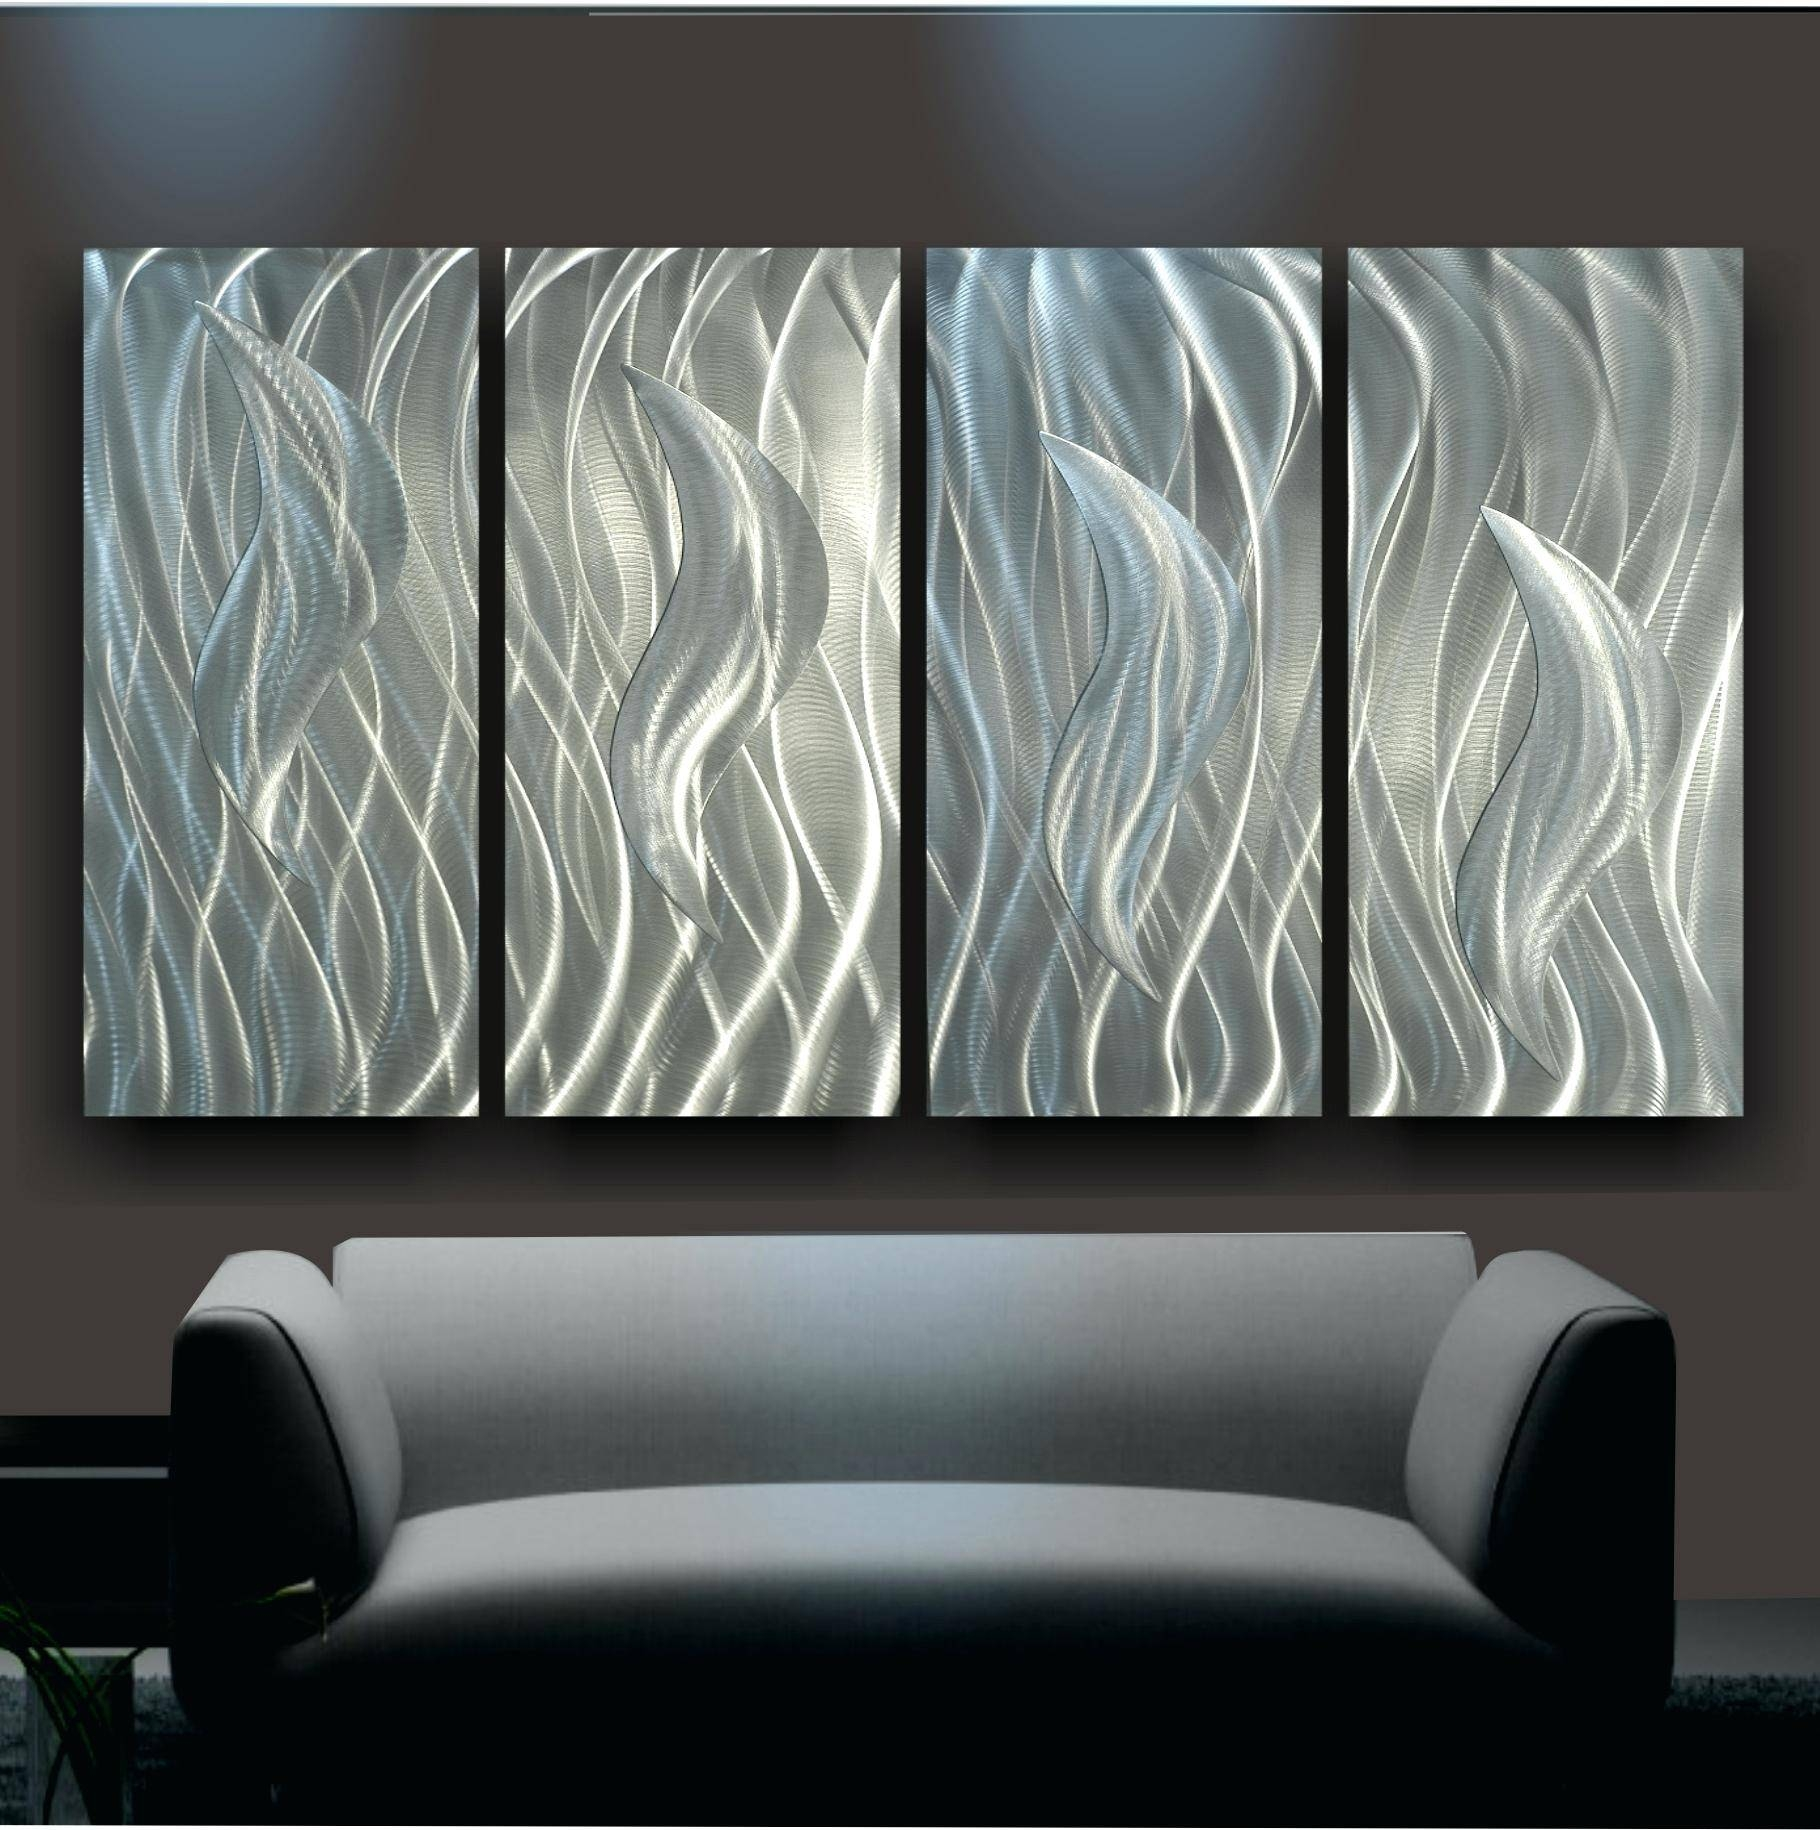 Wall Decor : Wall Design Zoom 119 Cozy Zoom Mesmerizing Art And Intended For Most Up To Date Art Deco Metal Wall Art (View 11 of 20)